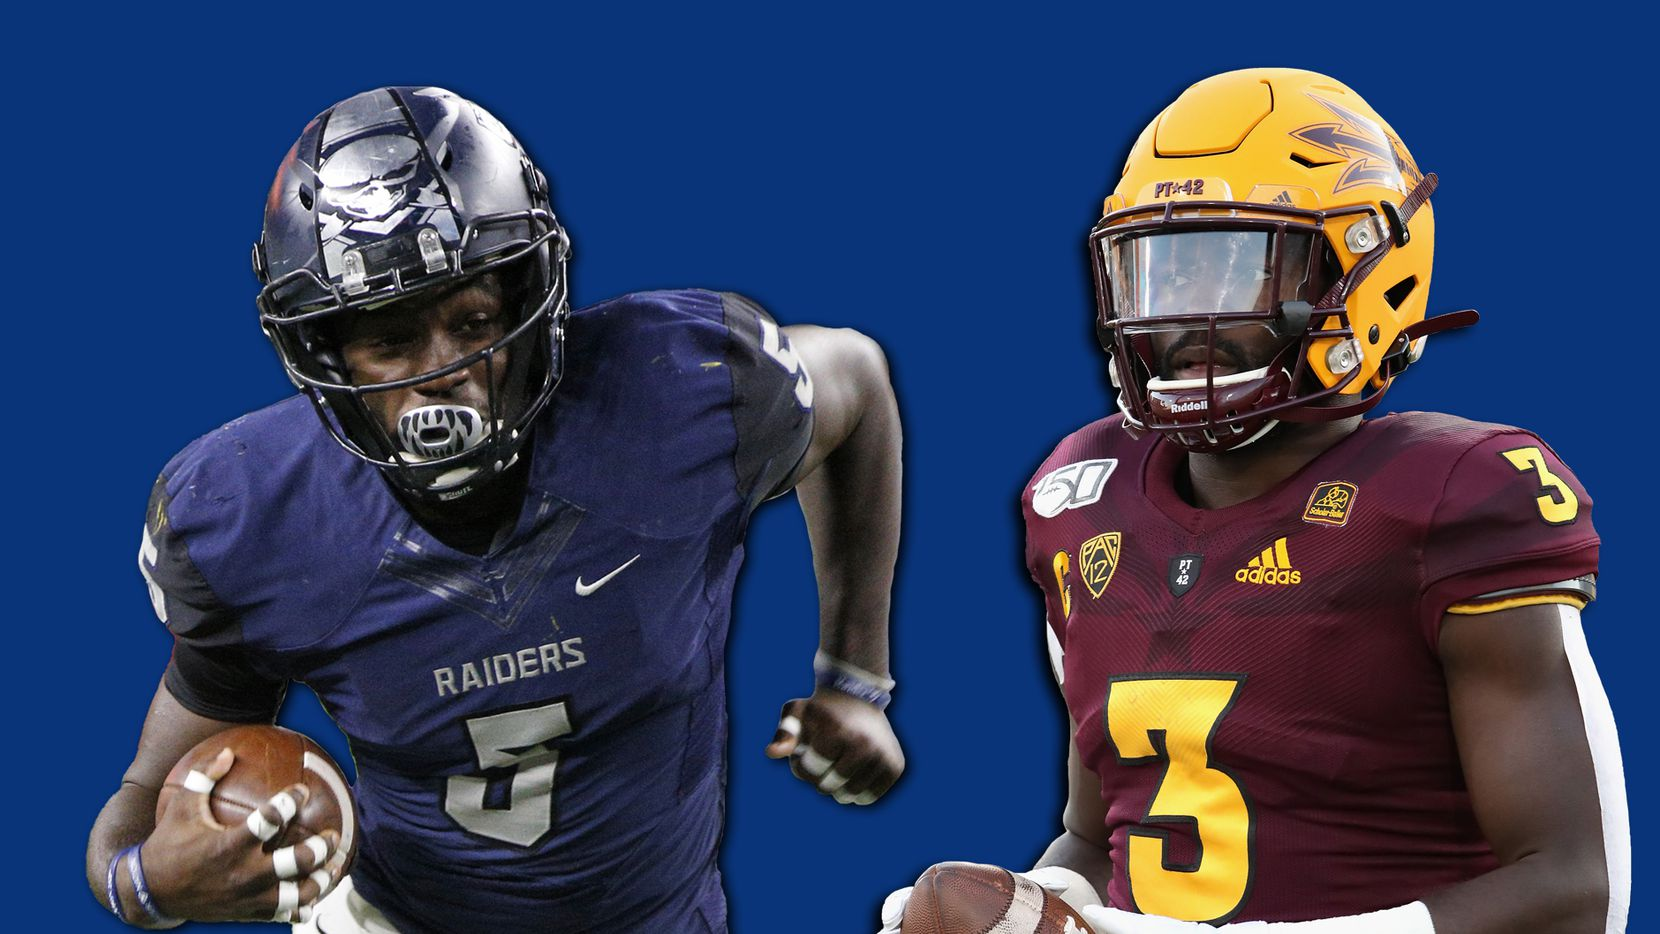 Eno Benjamin with Wylie East in 2015 (left) and Arizona State in 2018 (right).